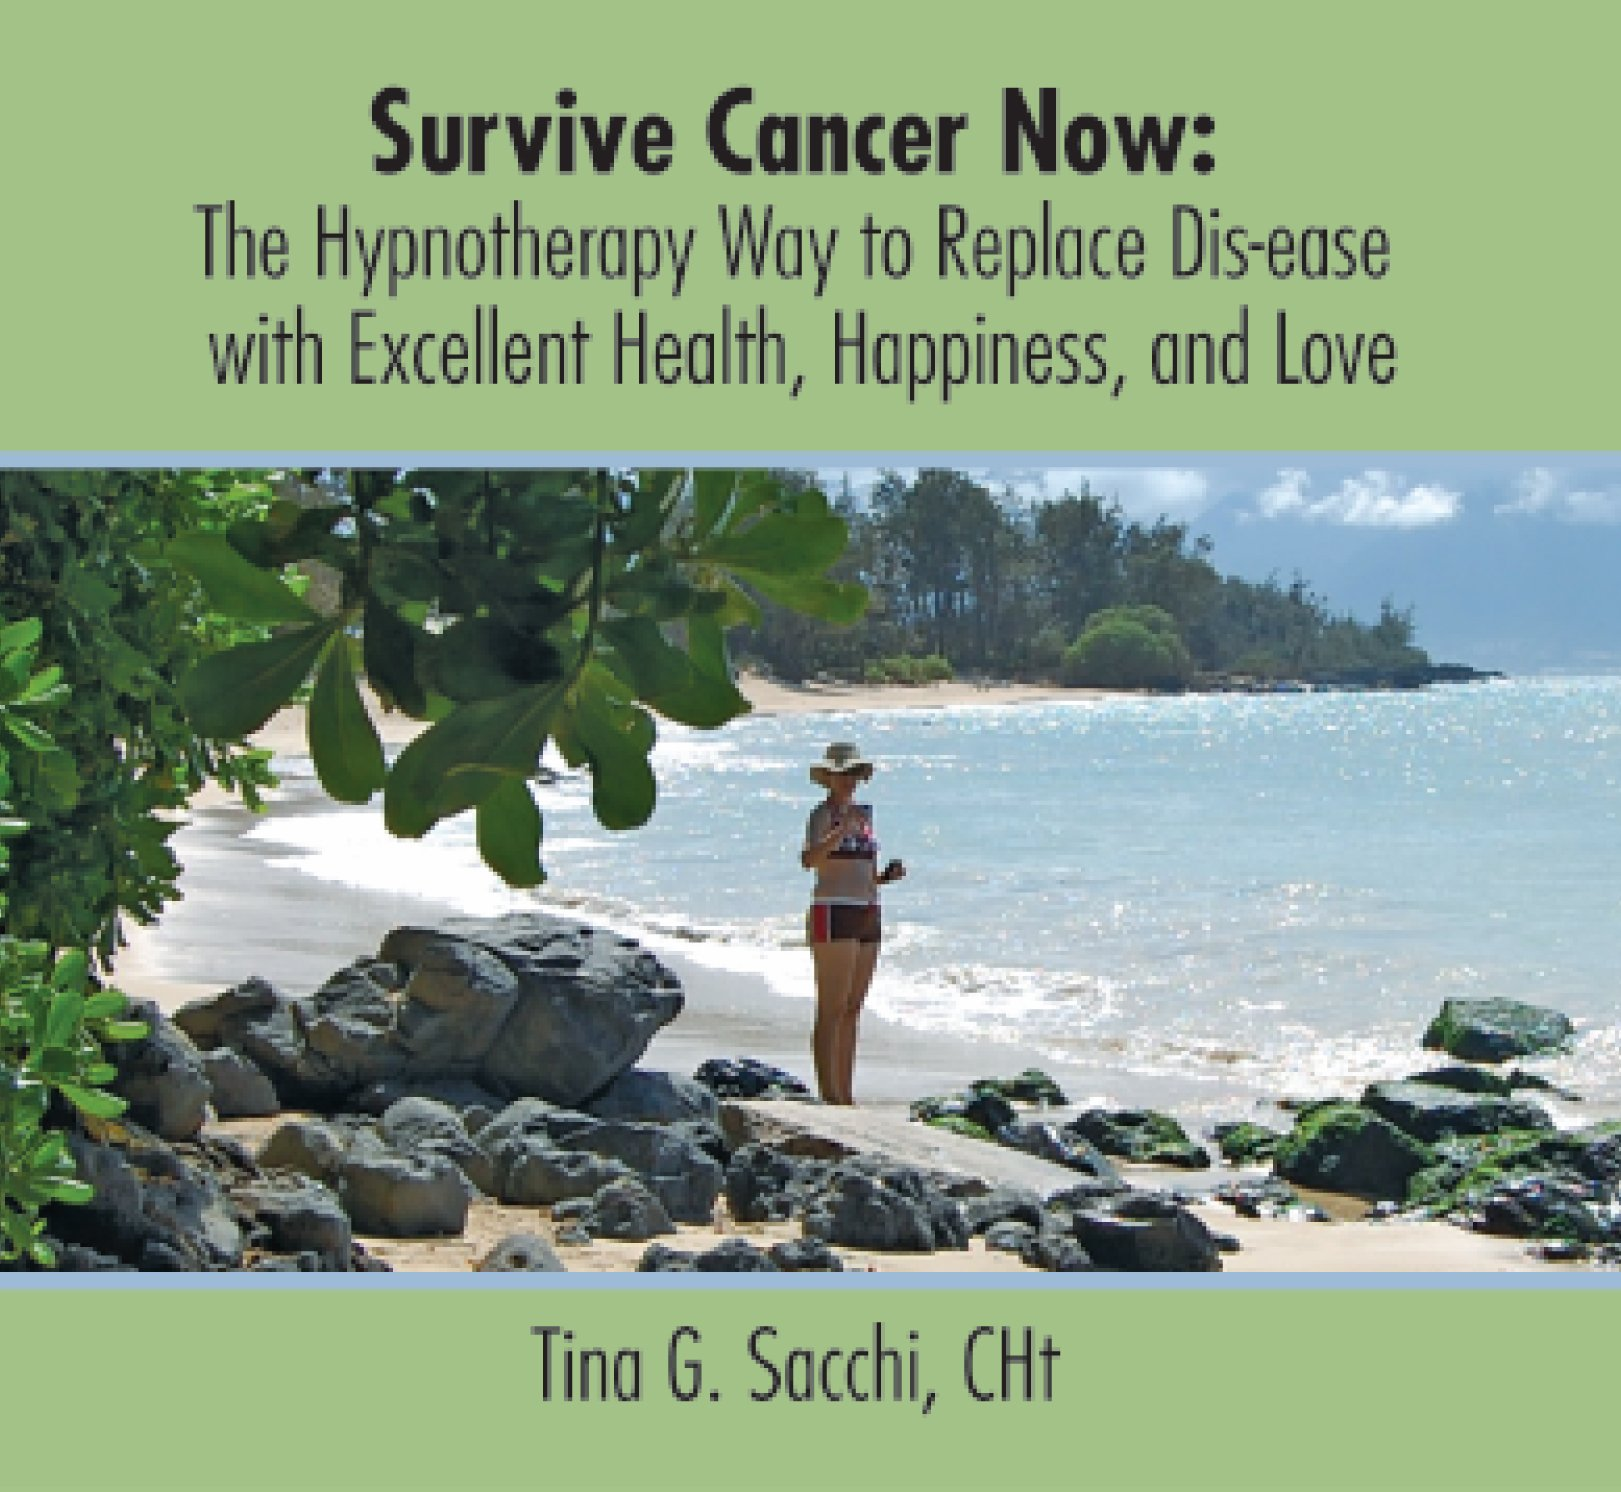 Survive Cancer Now, The Hypnotherapy Hypnosis Way To Replace Dis-ease With Excellent Health, Happiness, and Love